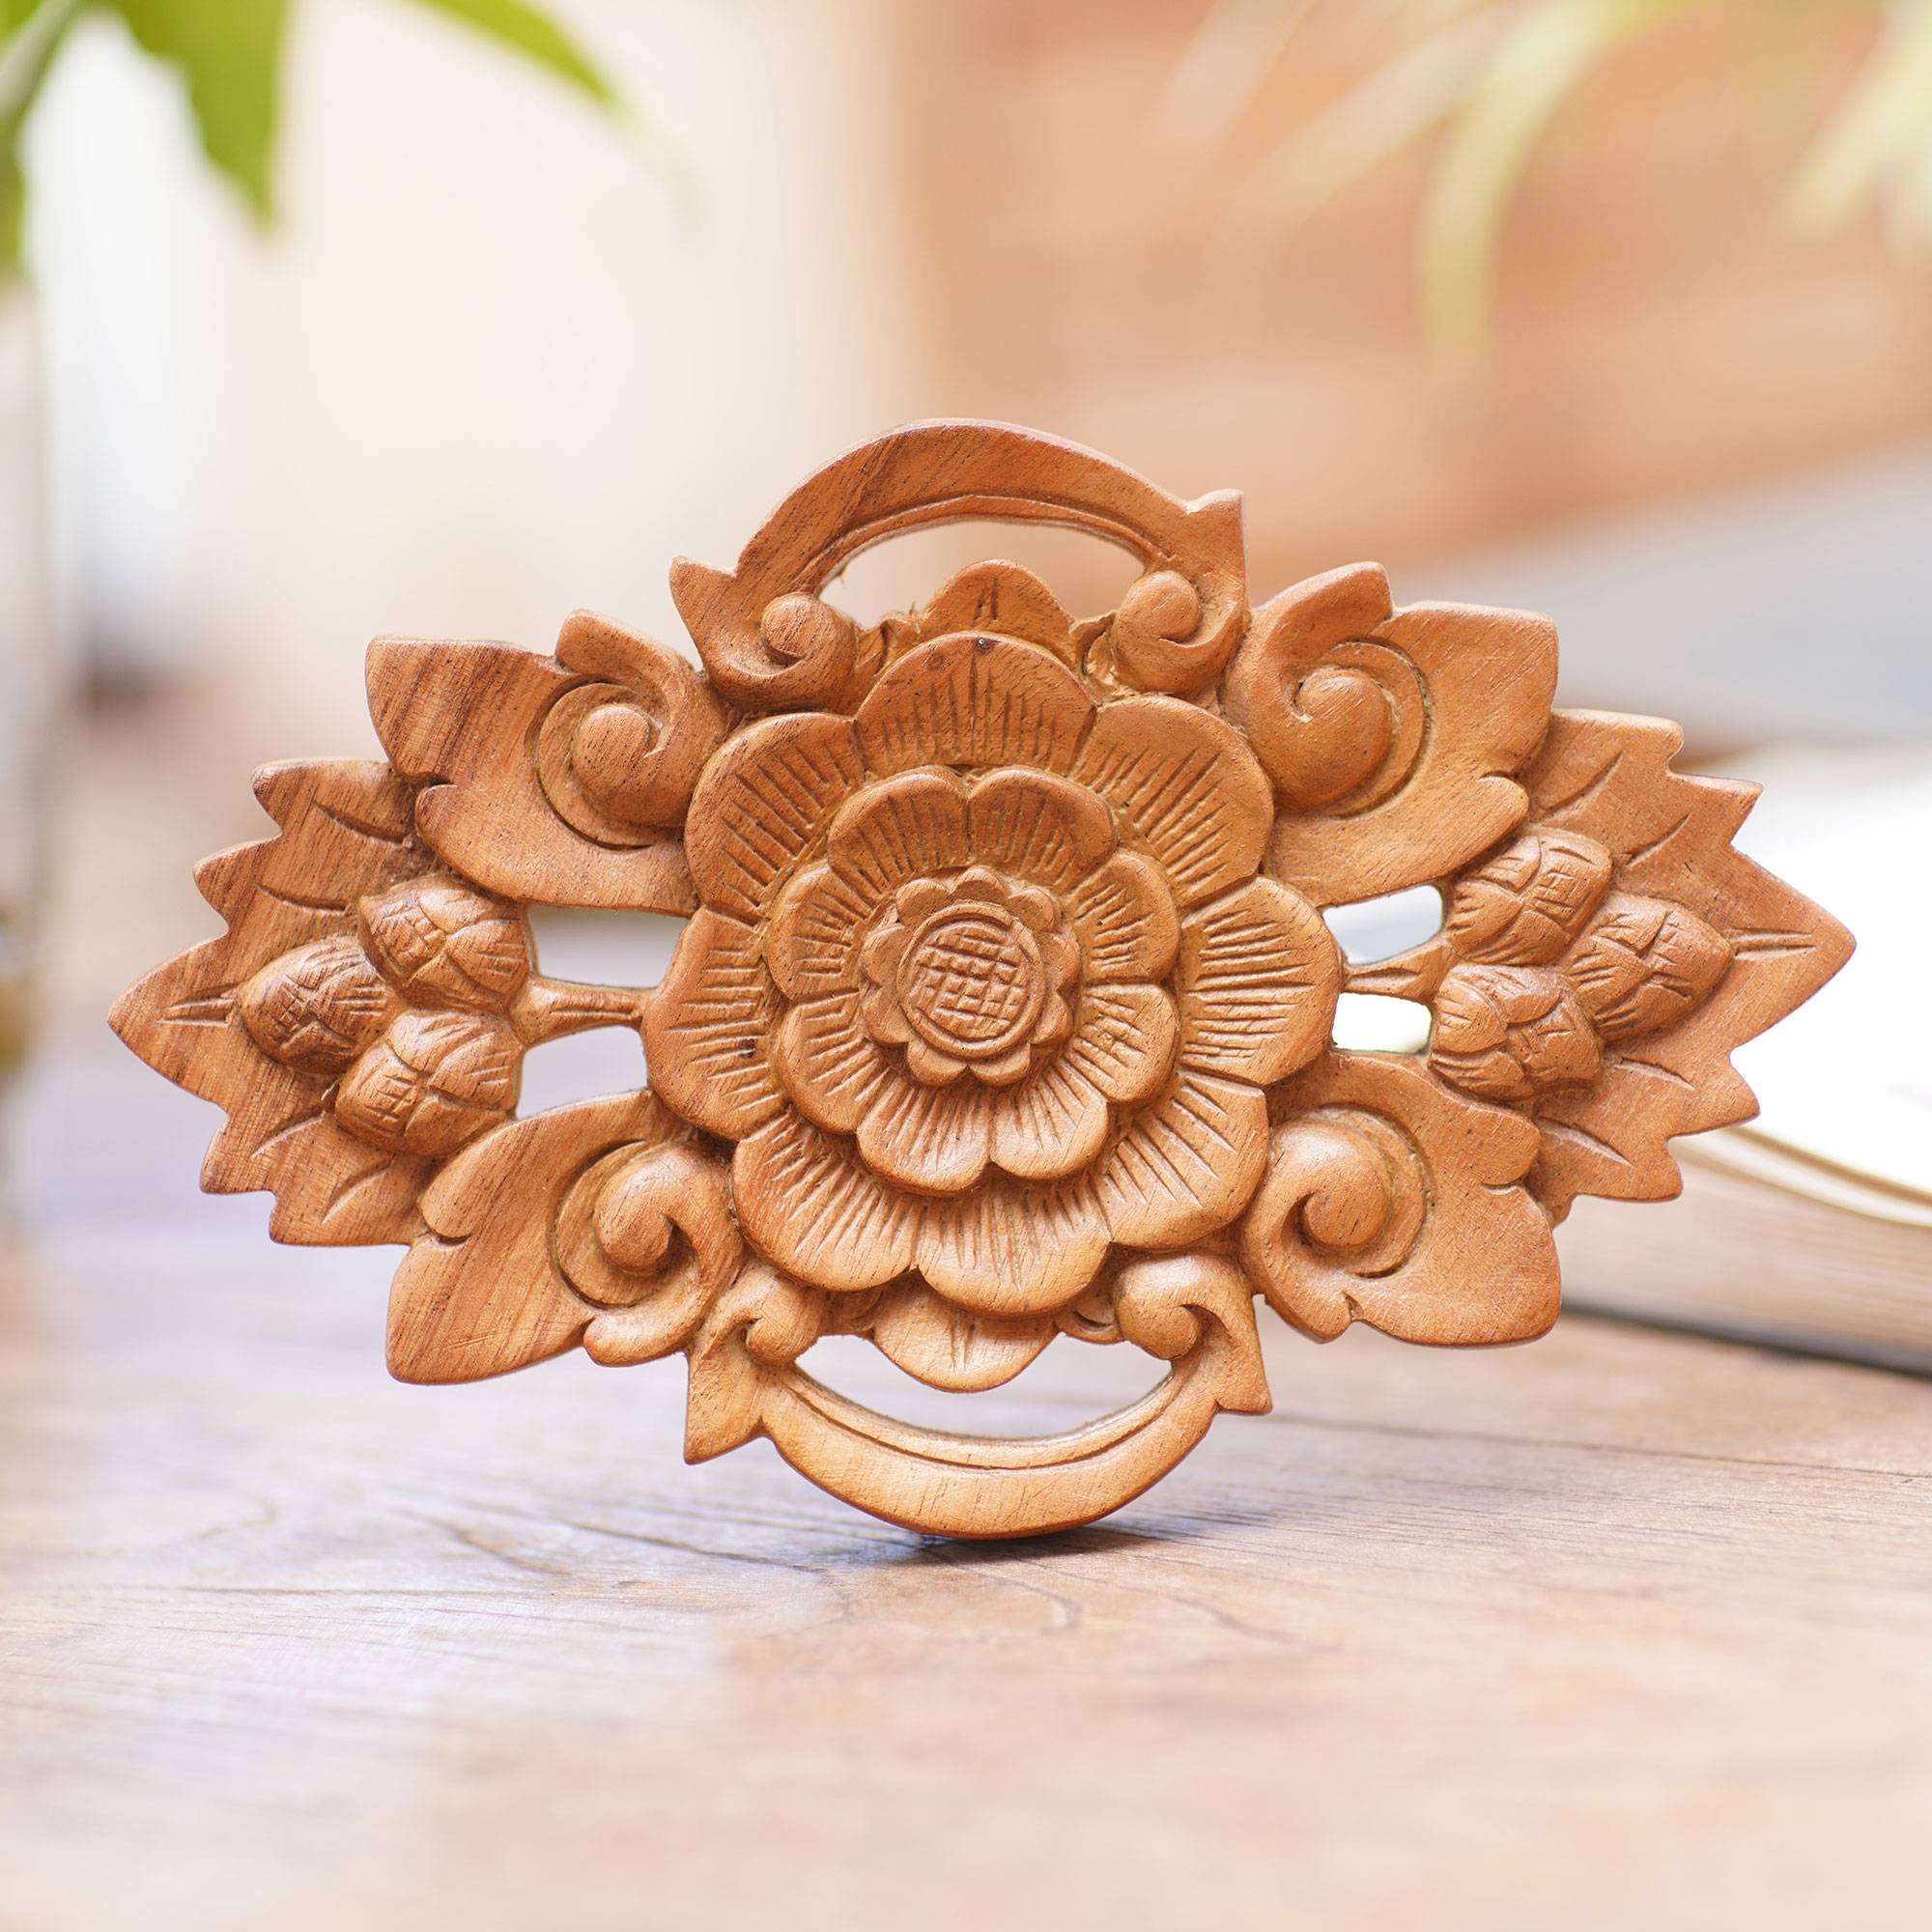 Rose wood carving zoom pictures flowers patterns gallery